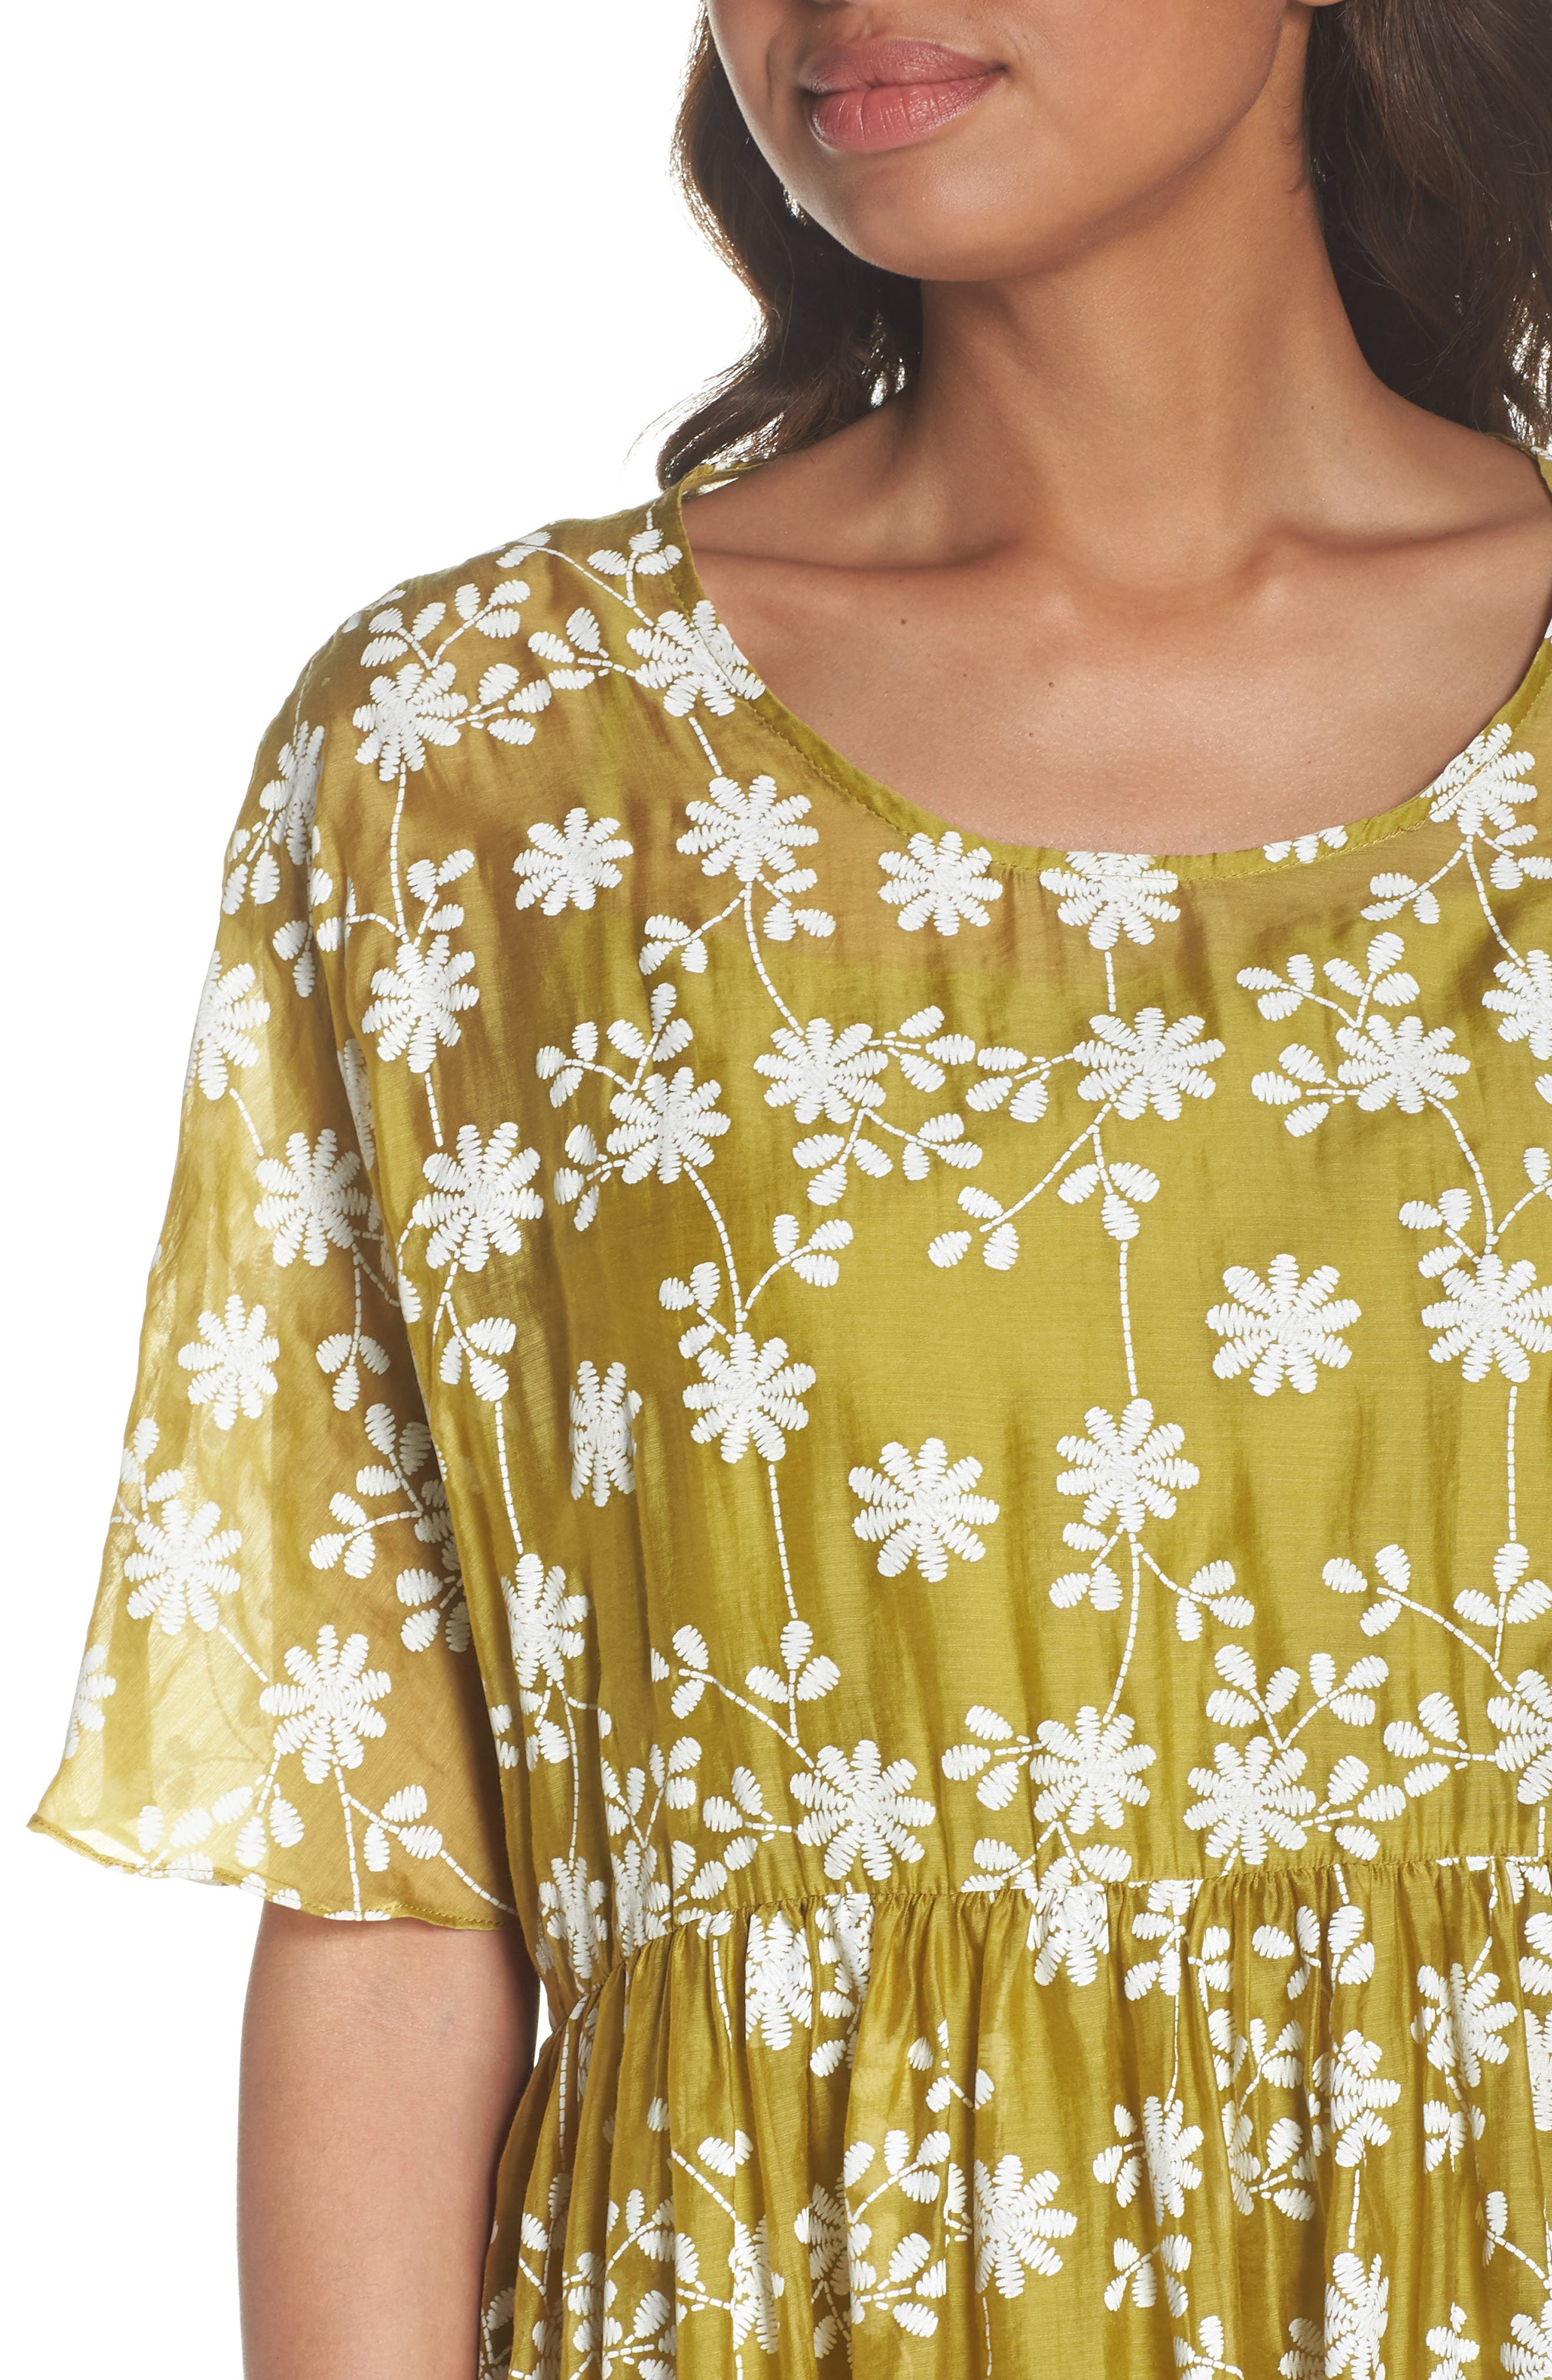 Daisy Picking Floral Dress,                             Alternate thumbnail 4, color,                             700